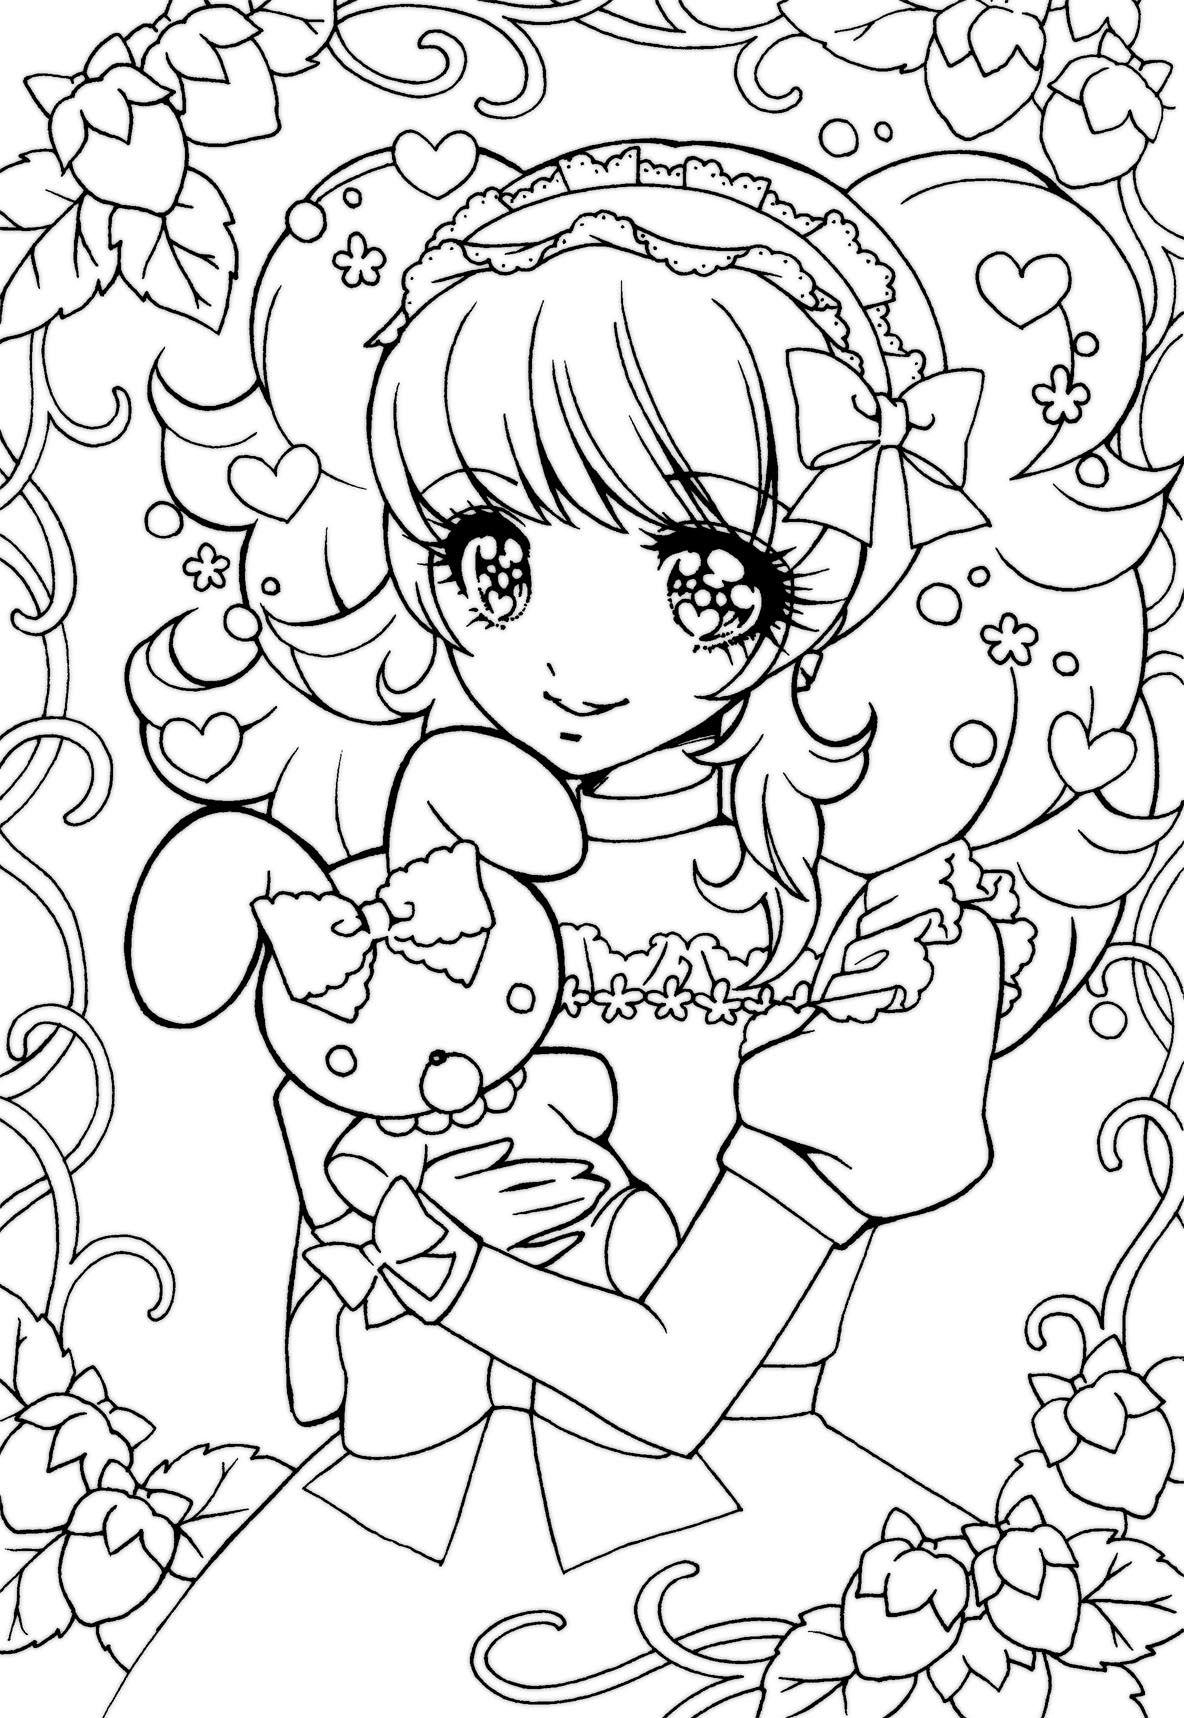 japanese anime girl coloring pages kids draw of japanese girl in anime coloring page pages girl coloring anime japanese